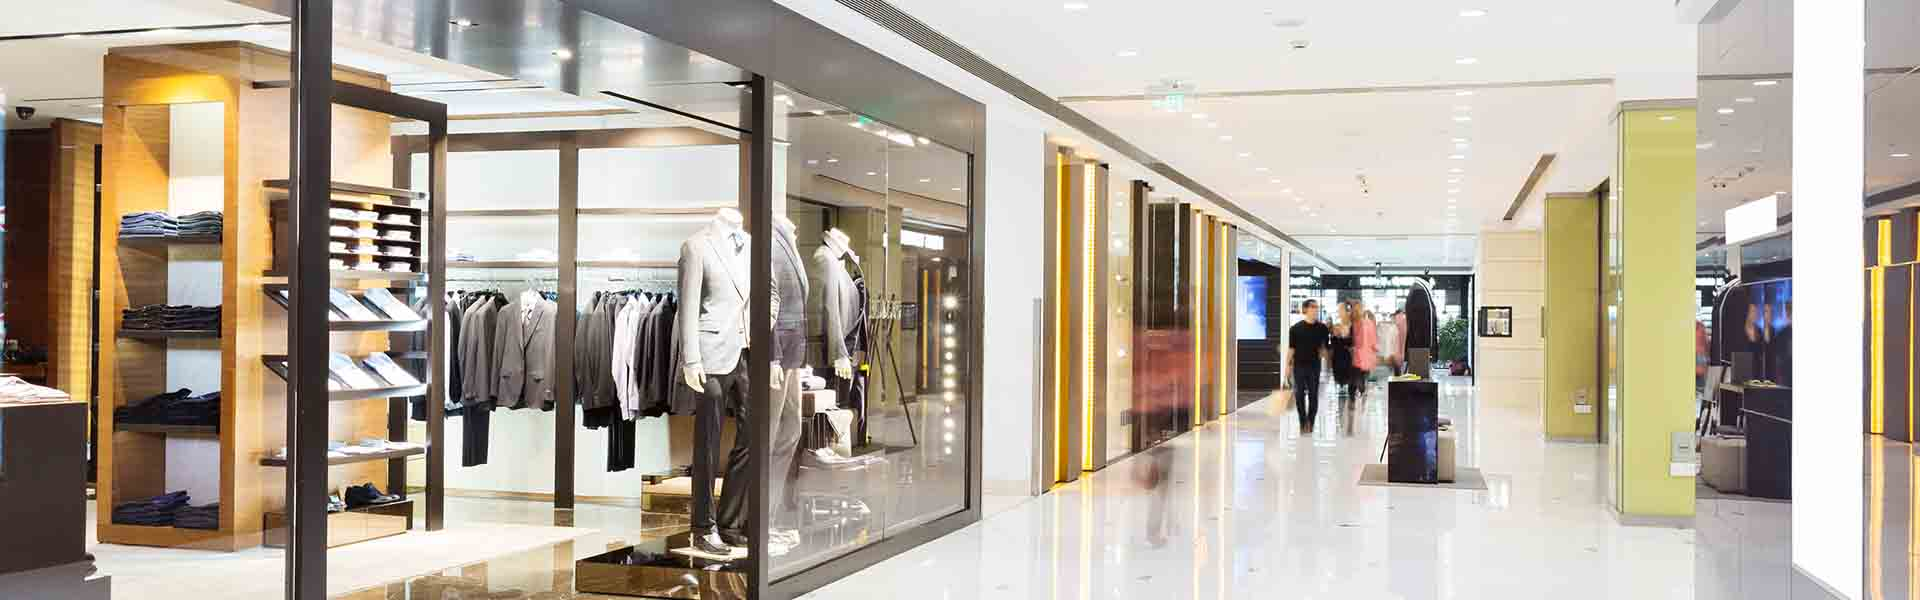 Intelligent Fashion and Apparel Retail Forecasting